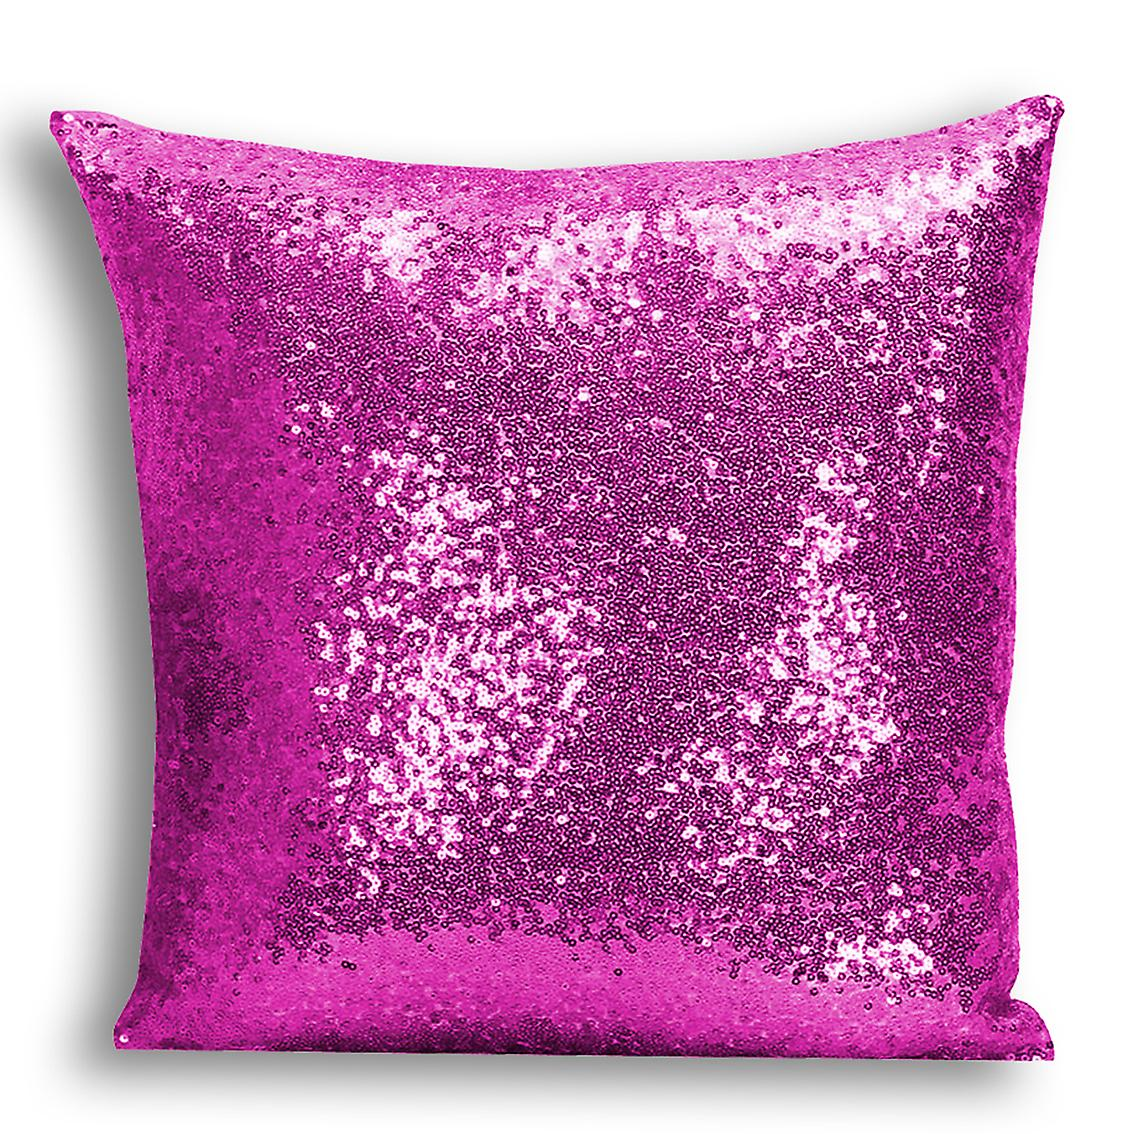 Home I Cover For Decor 4 Pink Sequin CushionPillow Printed Design tronixsUnicorn J3FTlK1c